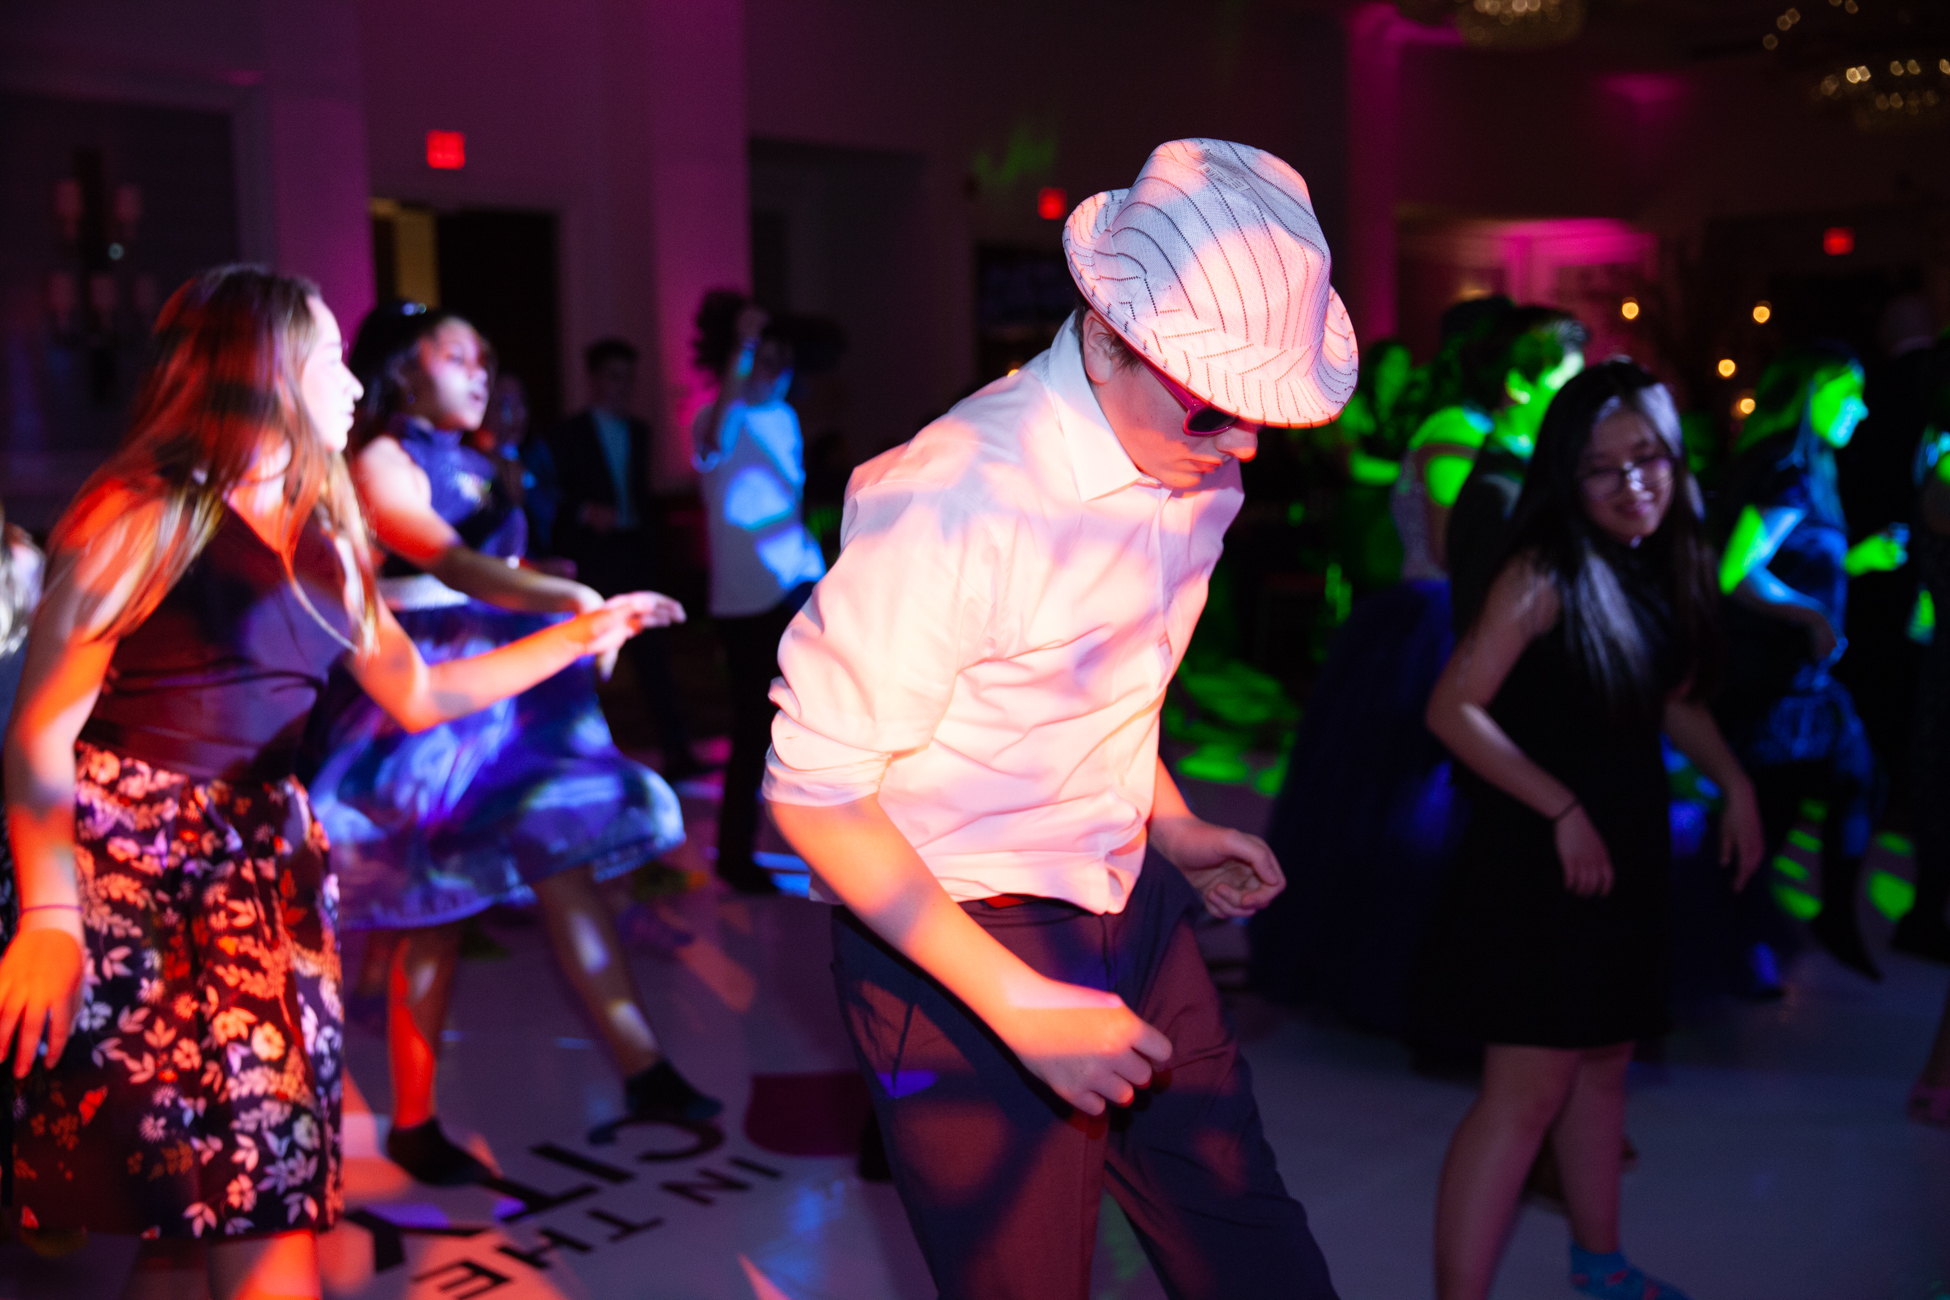 Sydney's Bat Mitzvah at Sheraton Society Hill by Avi Loren Fox LLC - Sneak Peak-75.jpg